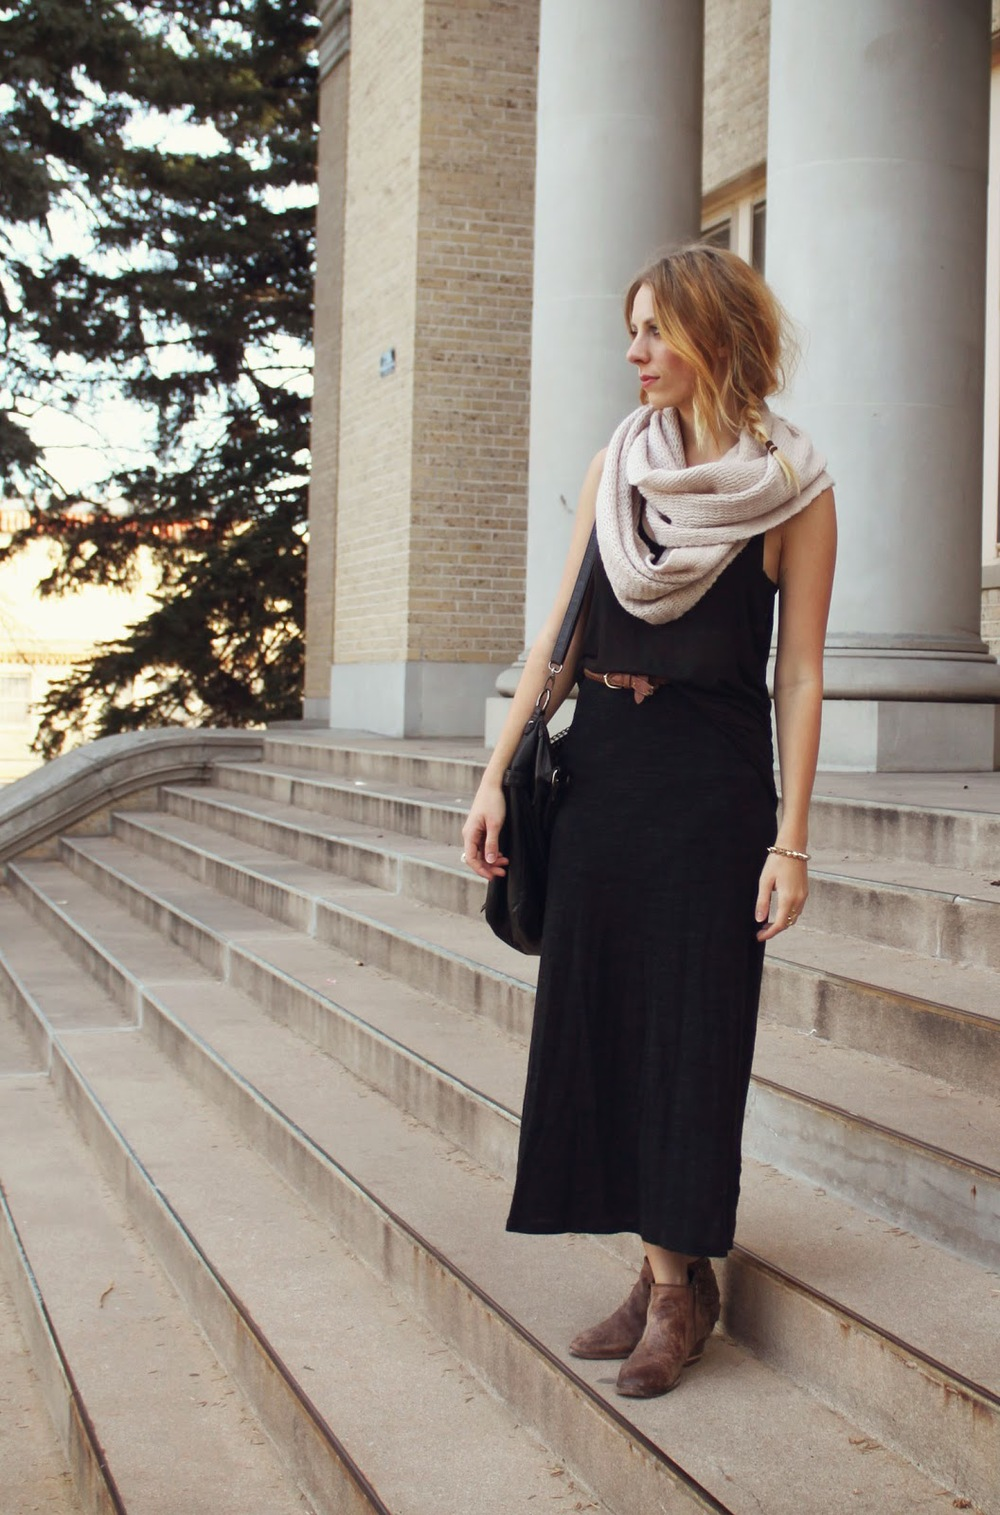 Sarah - Colorado State University student wears a dark charcoal dress anchored by a brown belt and layered with a grey cream infinity scarf and black purse and brown zip-up booties